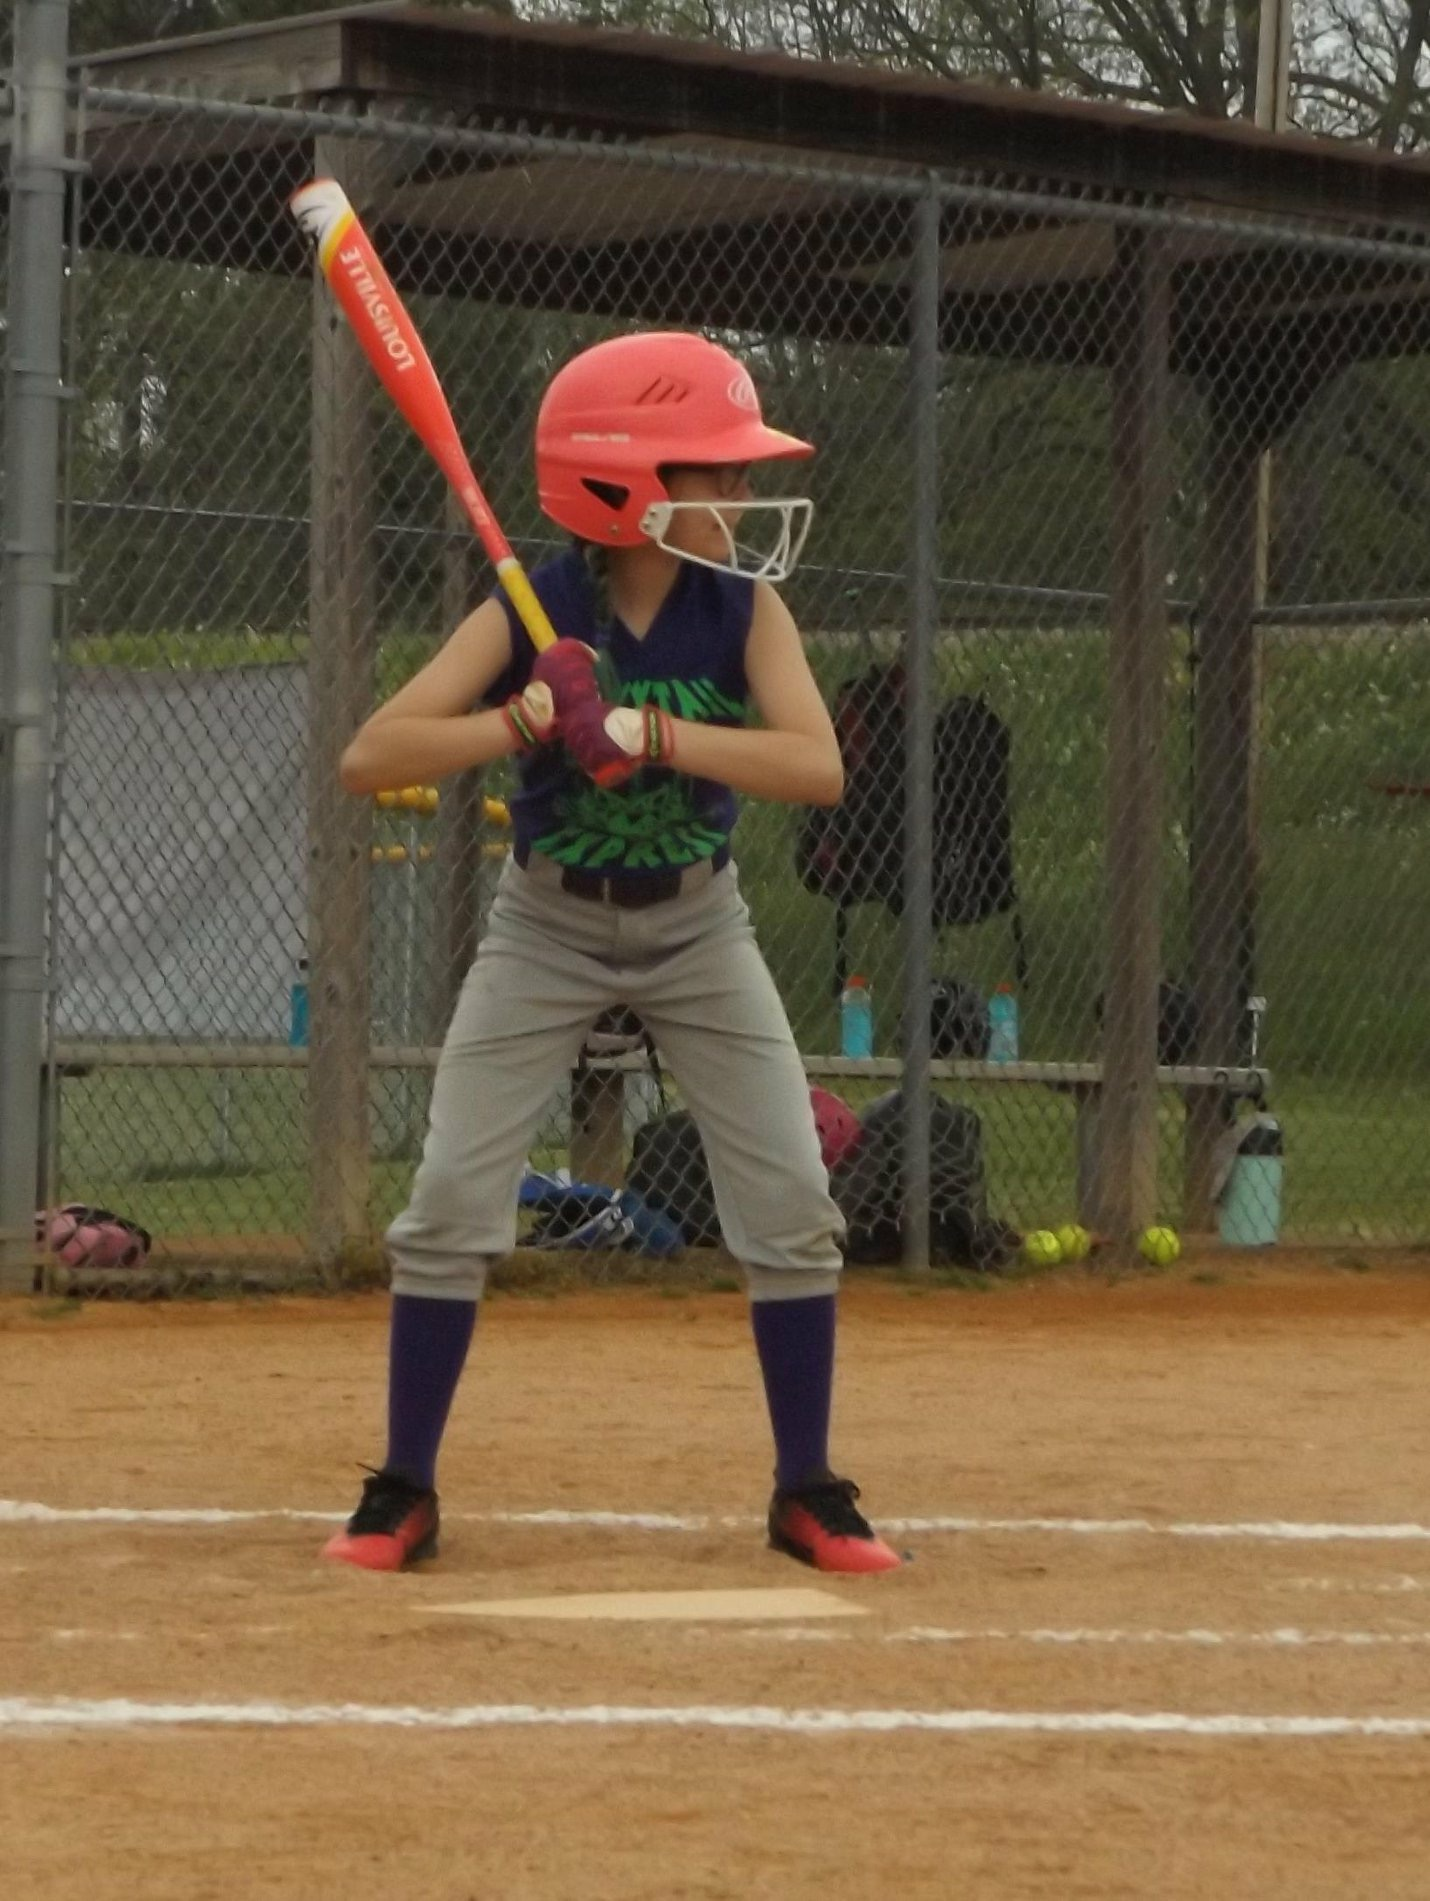 young baseball player ready to bat